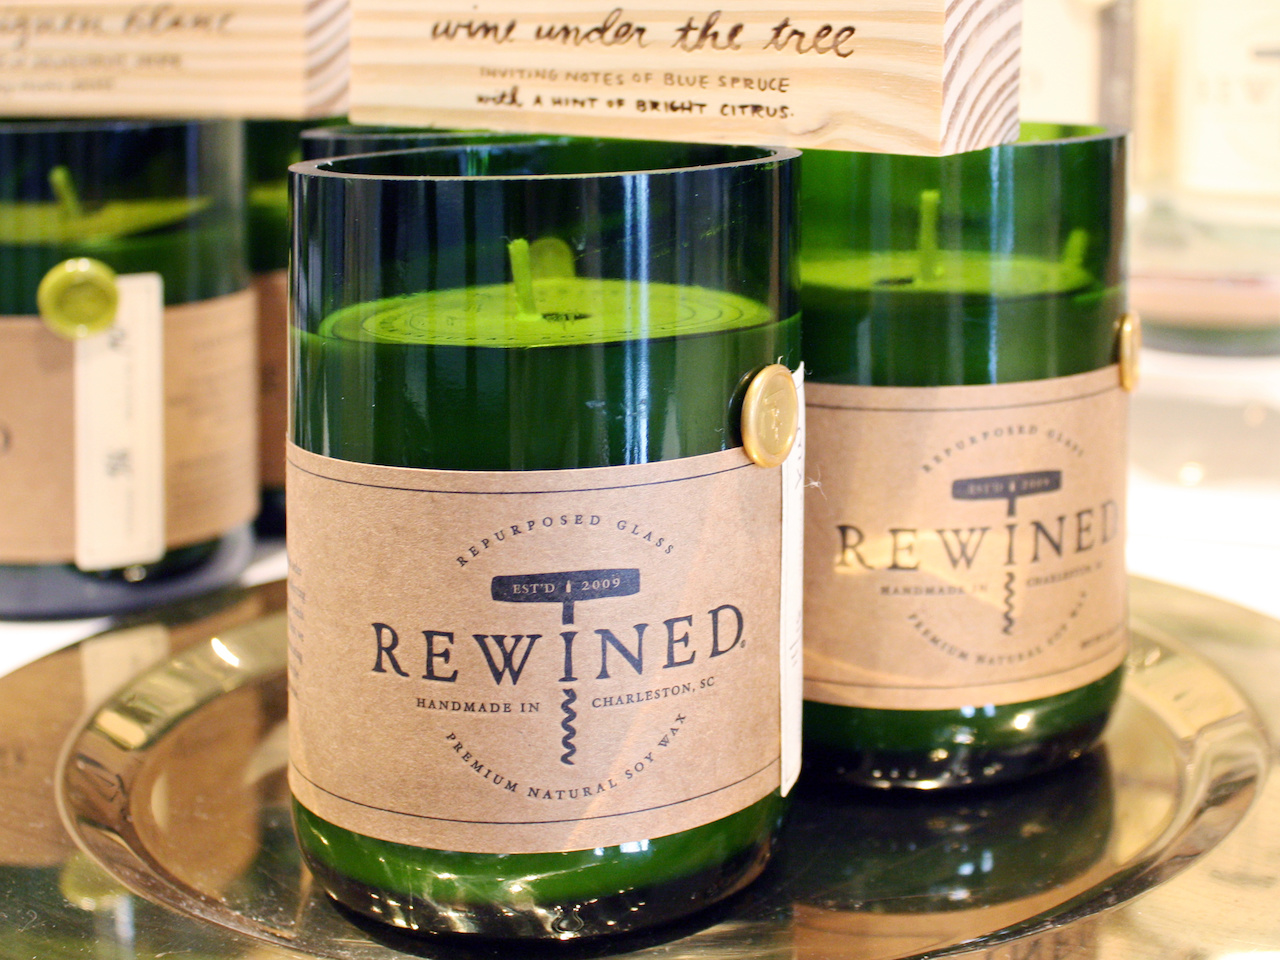 The candles that started it all, Rewined. After working in the restaurant business (with access to a lot of empty wine bottles), Candlefish owner Adam Fetsch saw an opportunity for wine-inspired candles and jumped on it.